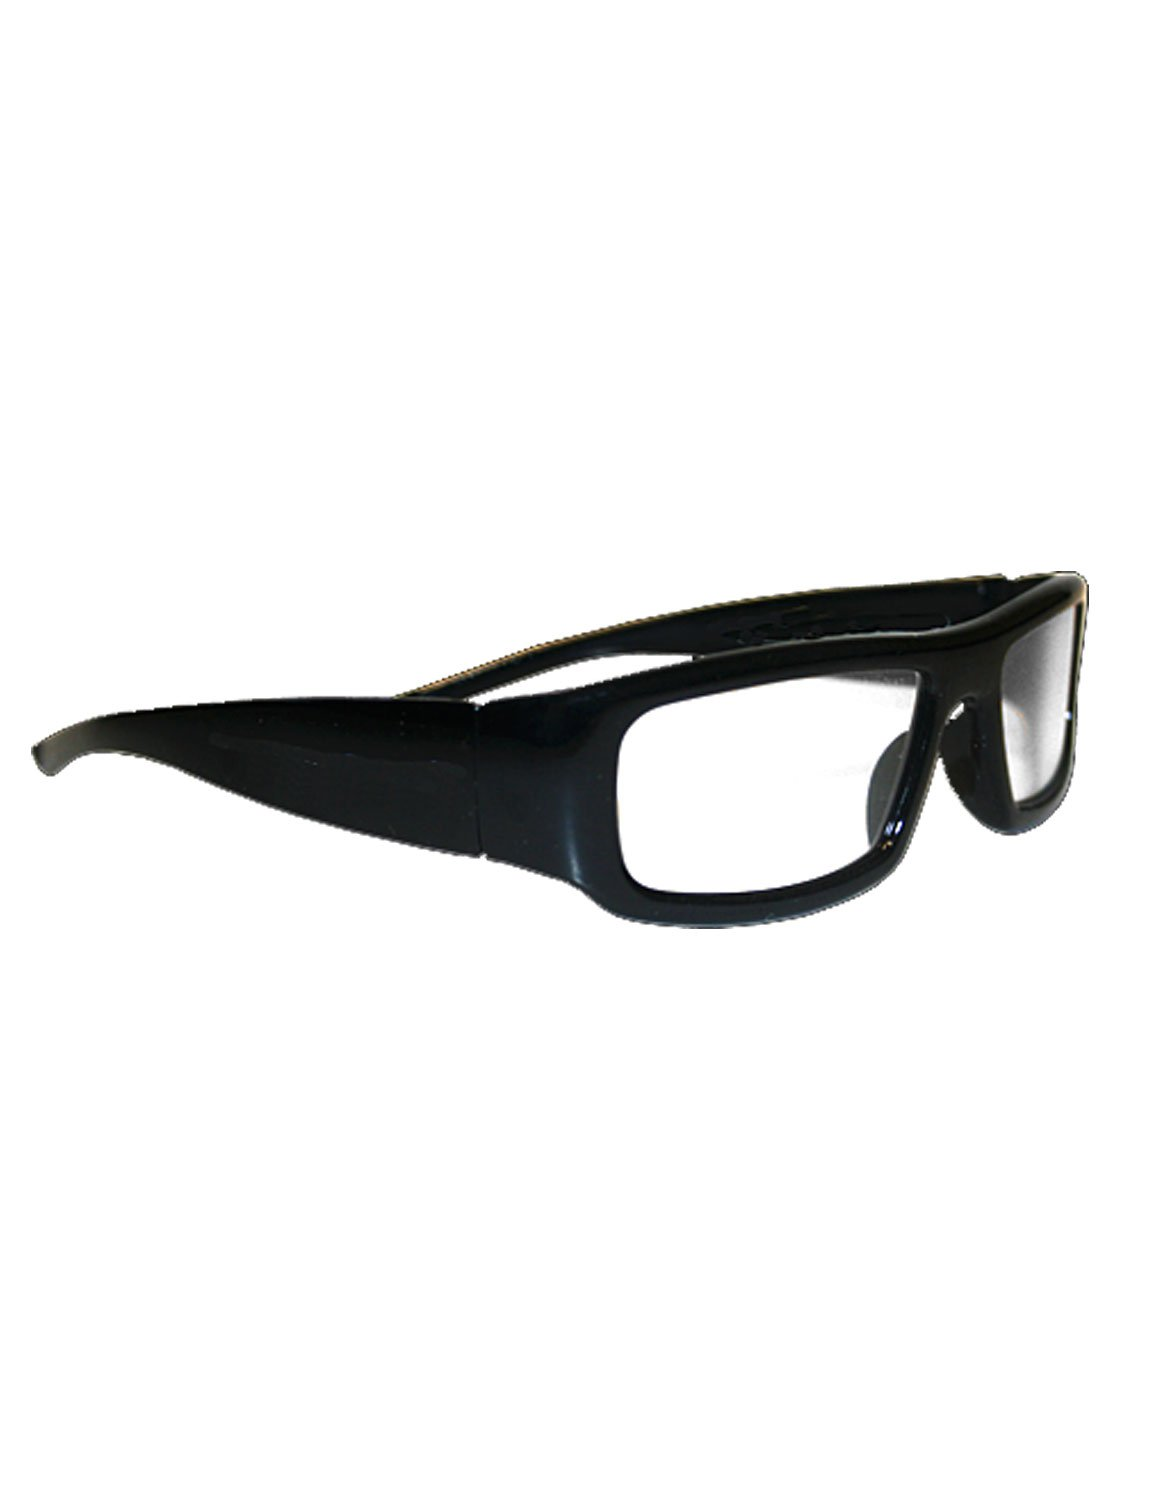 Sunshine Joy® Deluxe Plastic 3D Glasses Amazing 3-D Effects - Works on all 3-D Reactive Images - For Indoor Use Only by Sunshine Joy